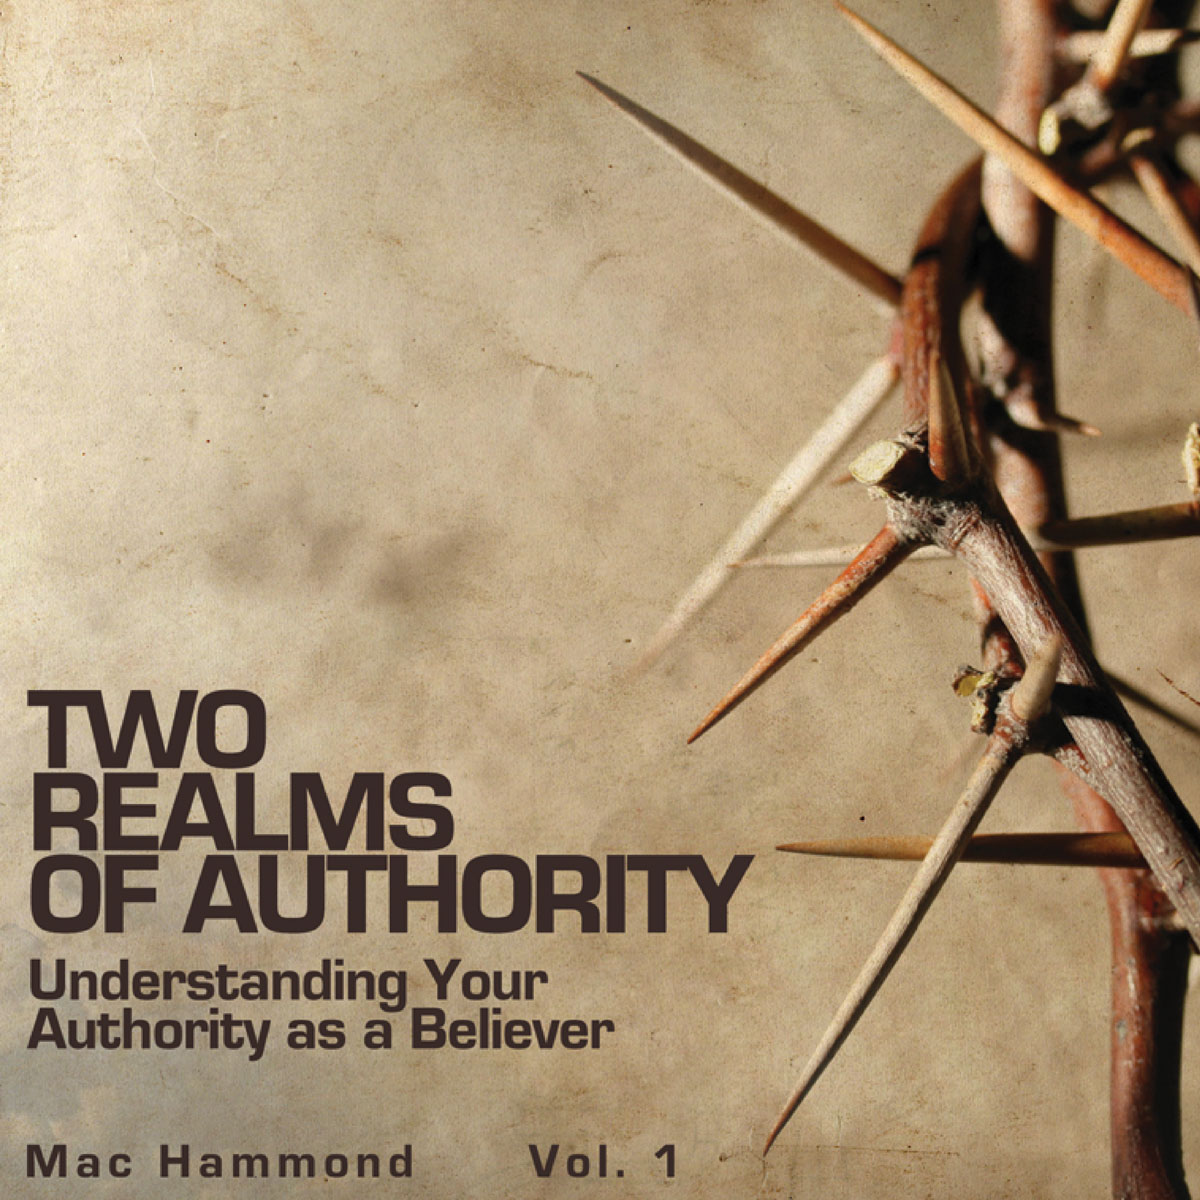 Two Realms of Authority Vol.1 by Mac Hammond